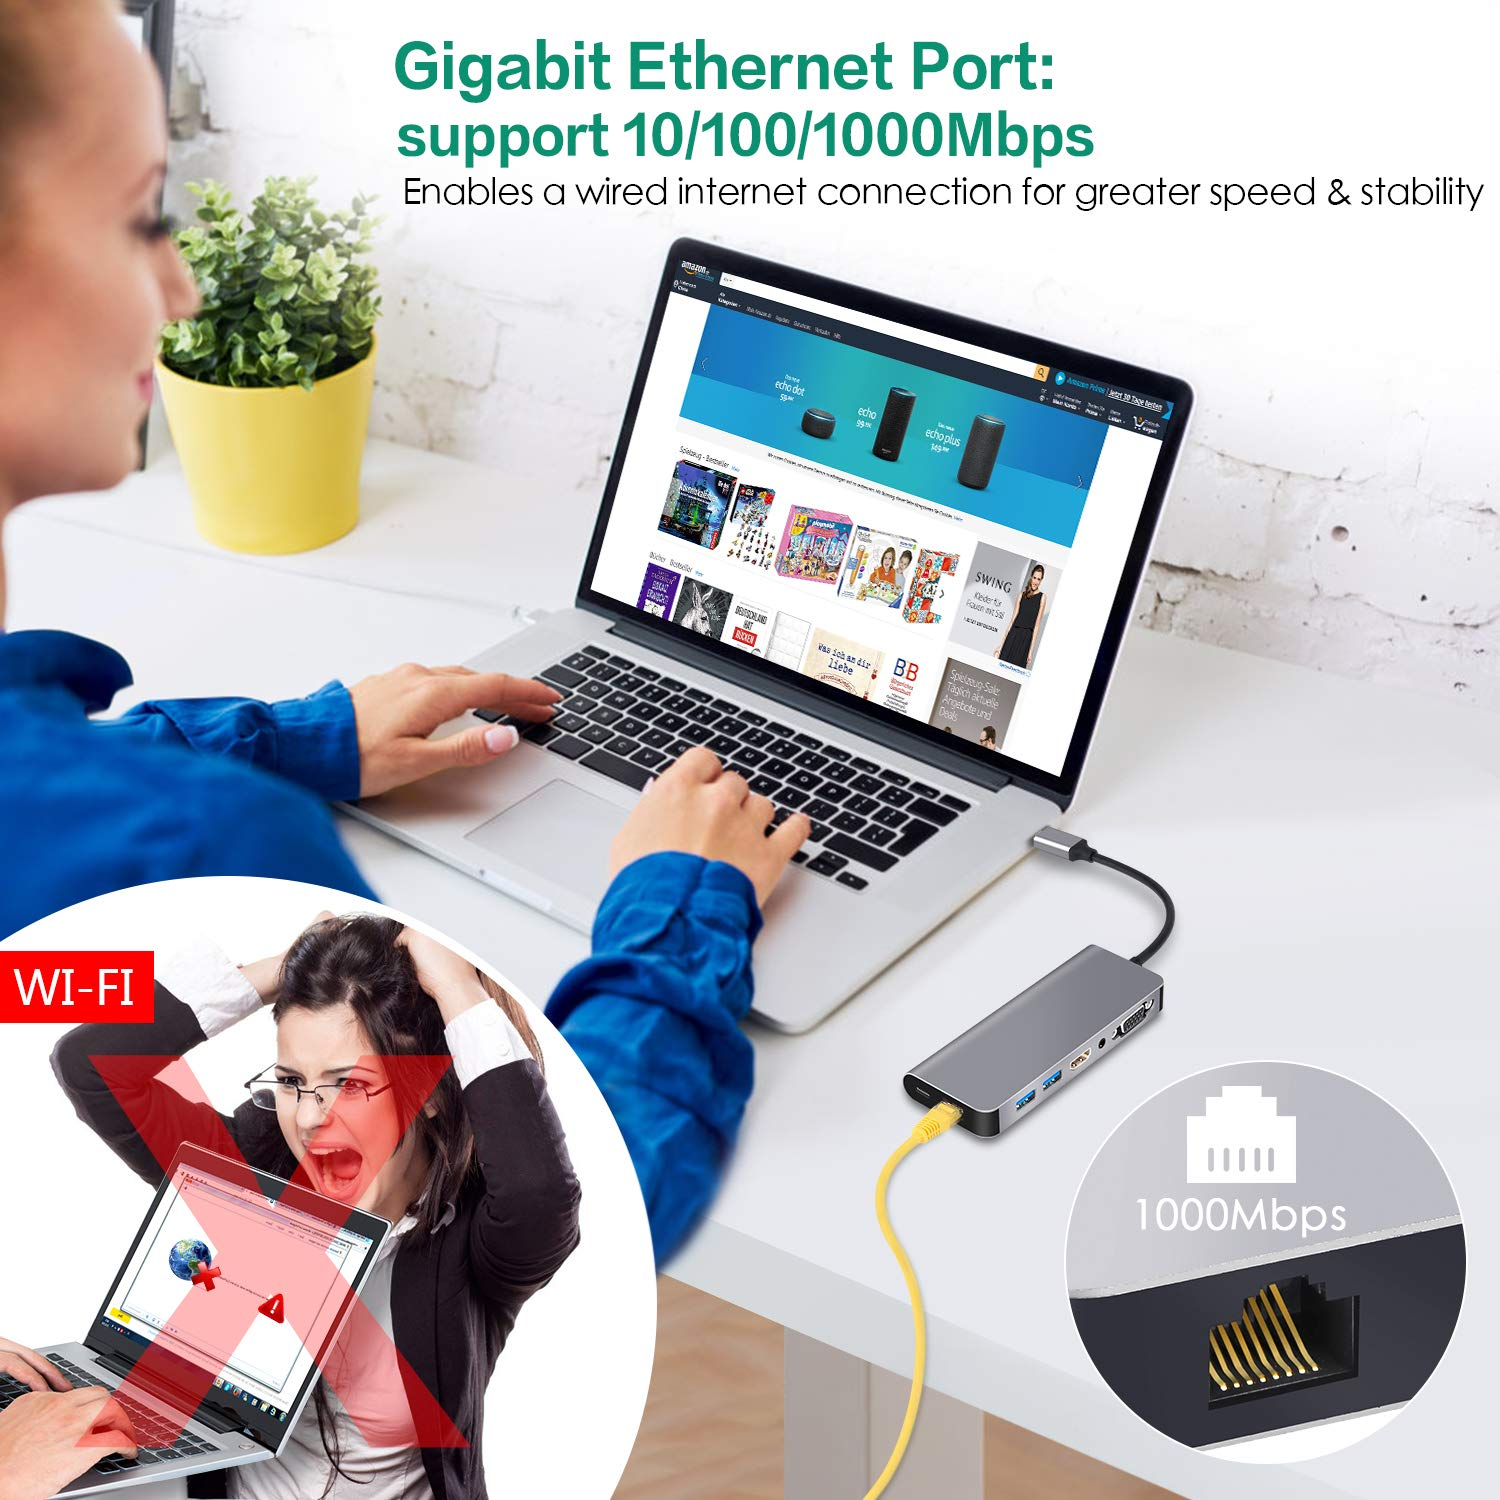 USB C HUB Ethernet HDMI,Type C HUB to HDMI 4K VGA Adaptor Samsung Dex Station for Galaxy S9/S8/Note 9/8,Nintendo Switch Adapter with 2 USB 3.0,Aduio Jack, PD for MacBook Pro and More USB-C Devices